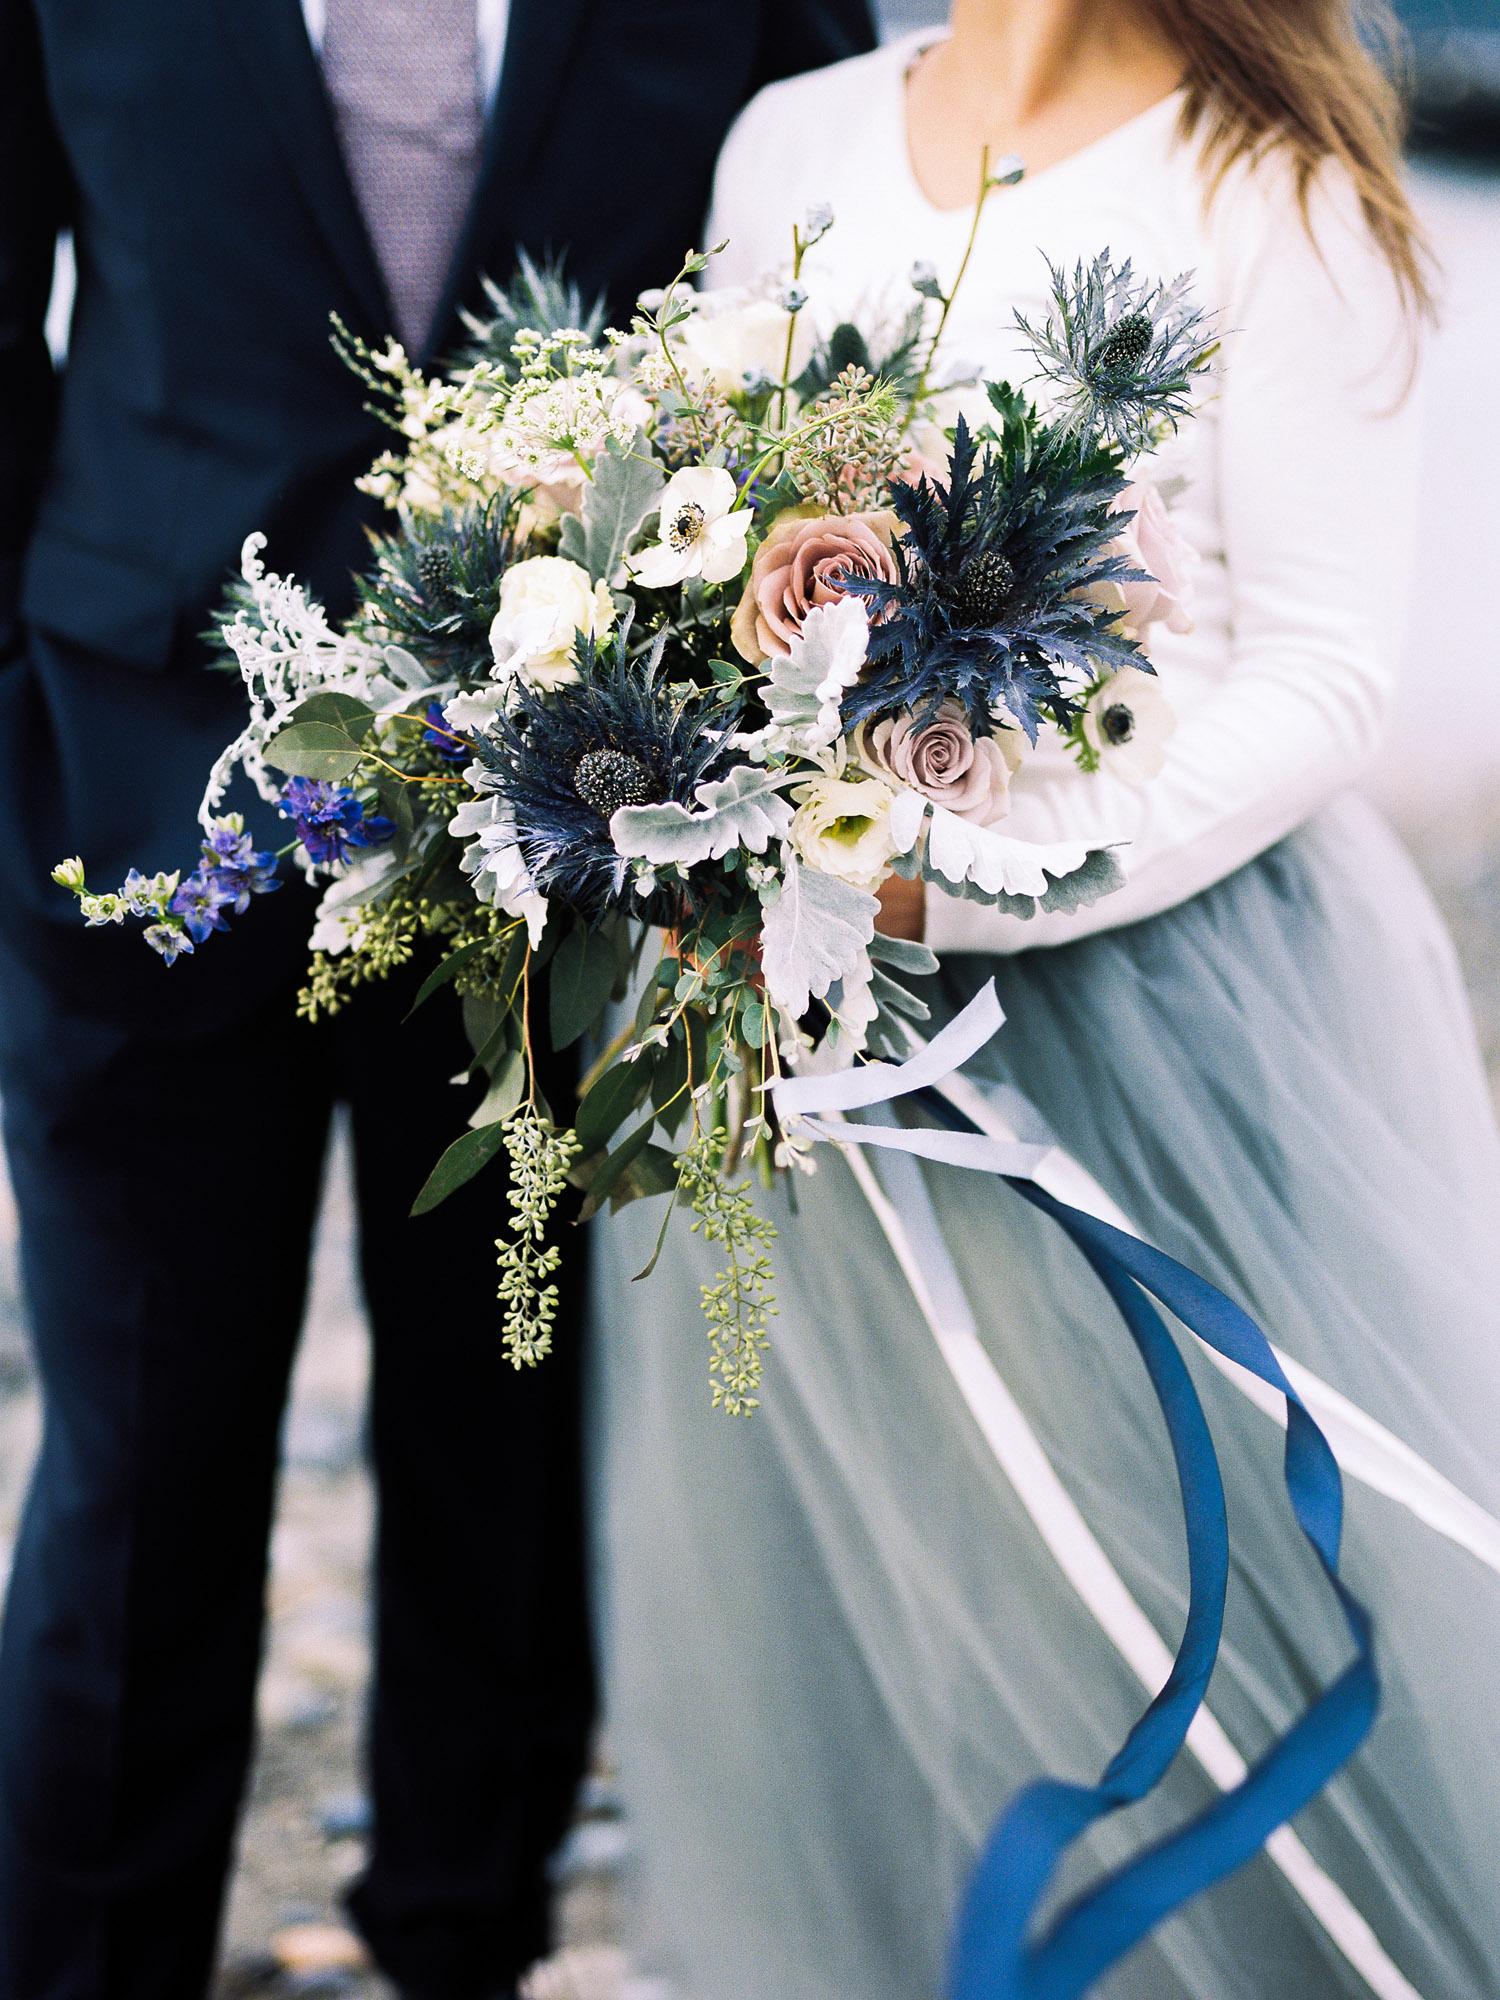 Smashing Petals Wedding Flowers and Silk Ribbon Bouquet details.jpg